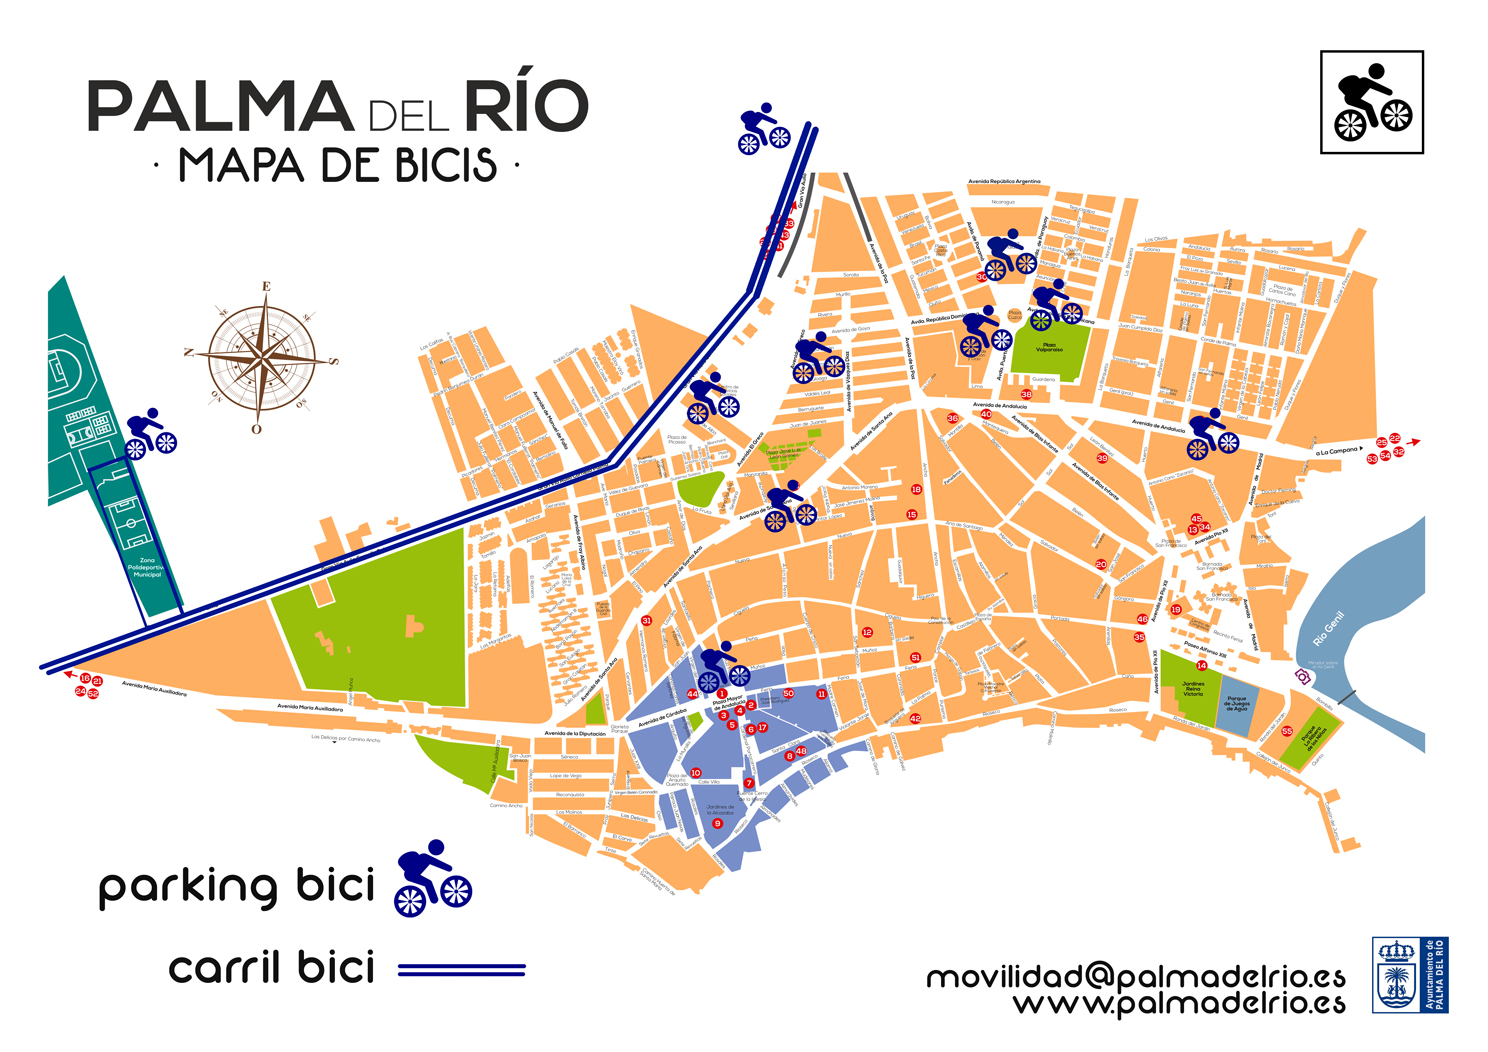 https://www.palmadelrio.es/sites/default/files/mapa-bicis-web.jpg